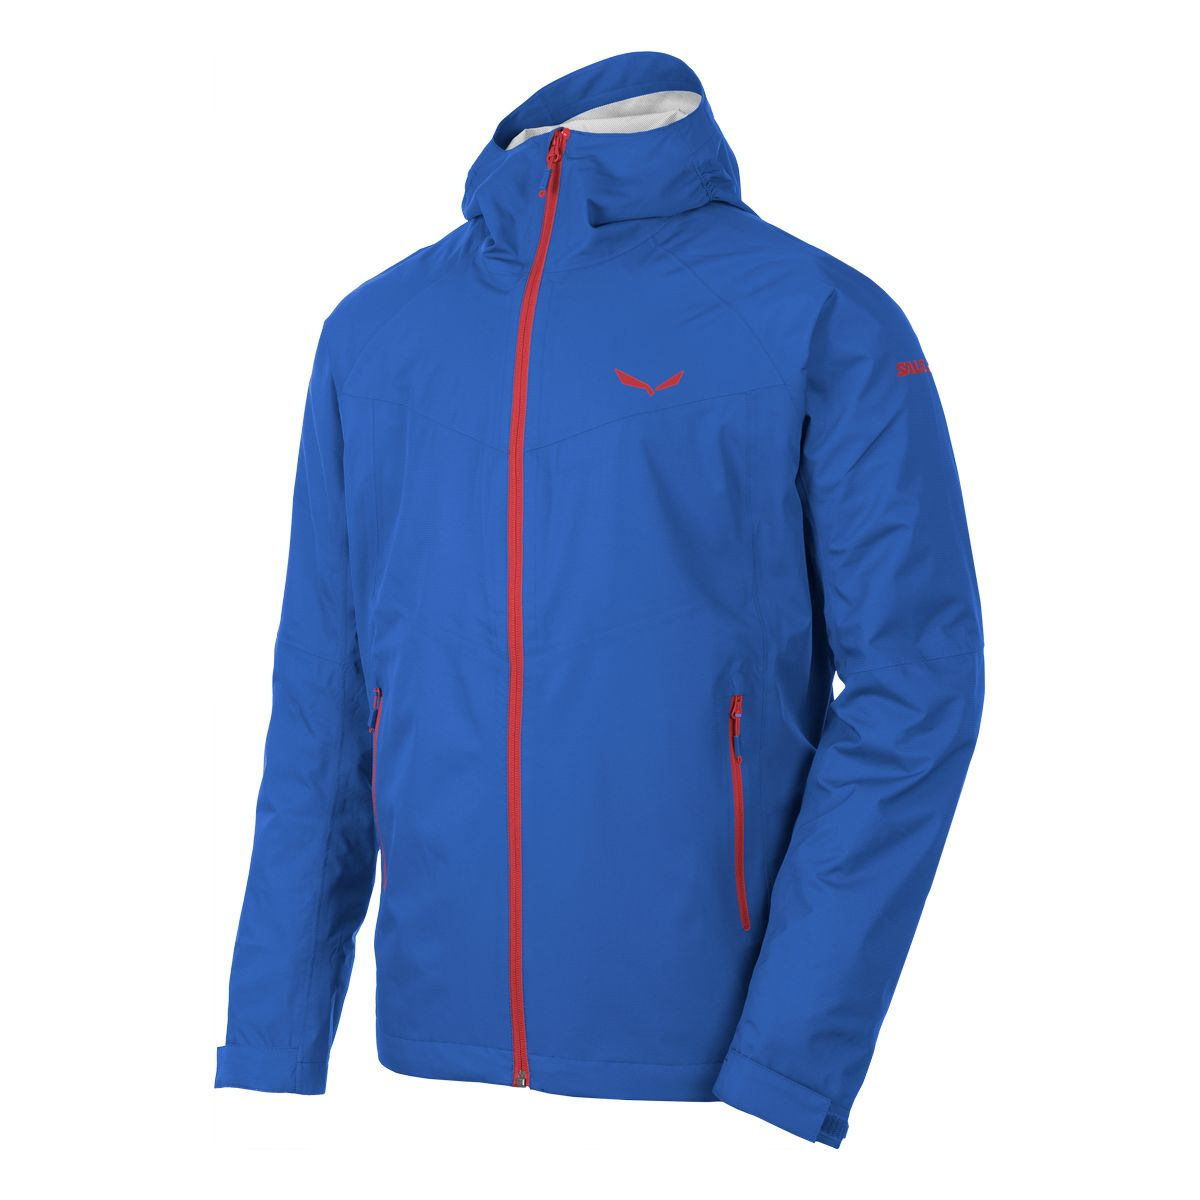 Куртка для активного отдыха Salewa 2016 PUEZ (AQUA 3) PTX M JKT nautical blue/1580